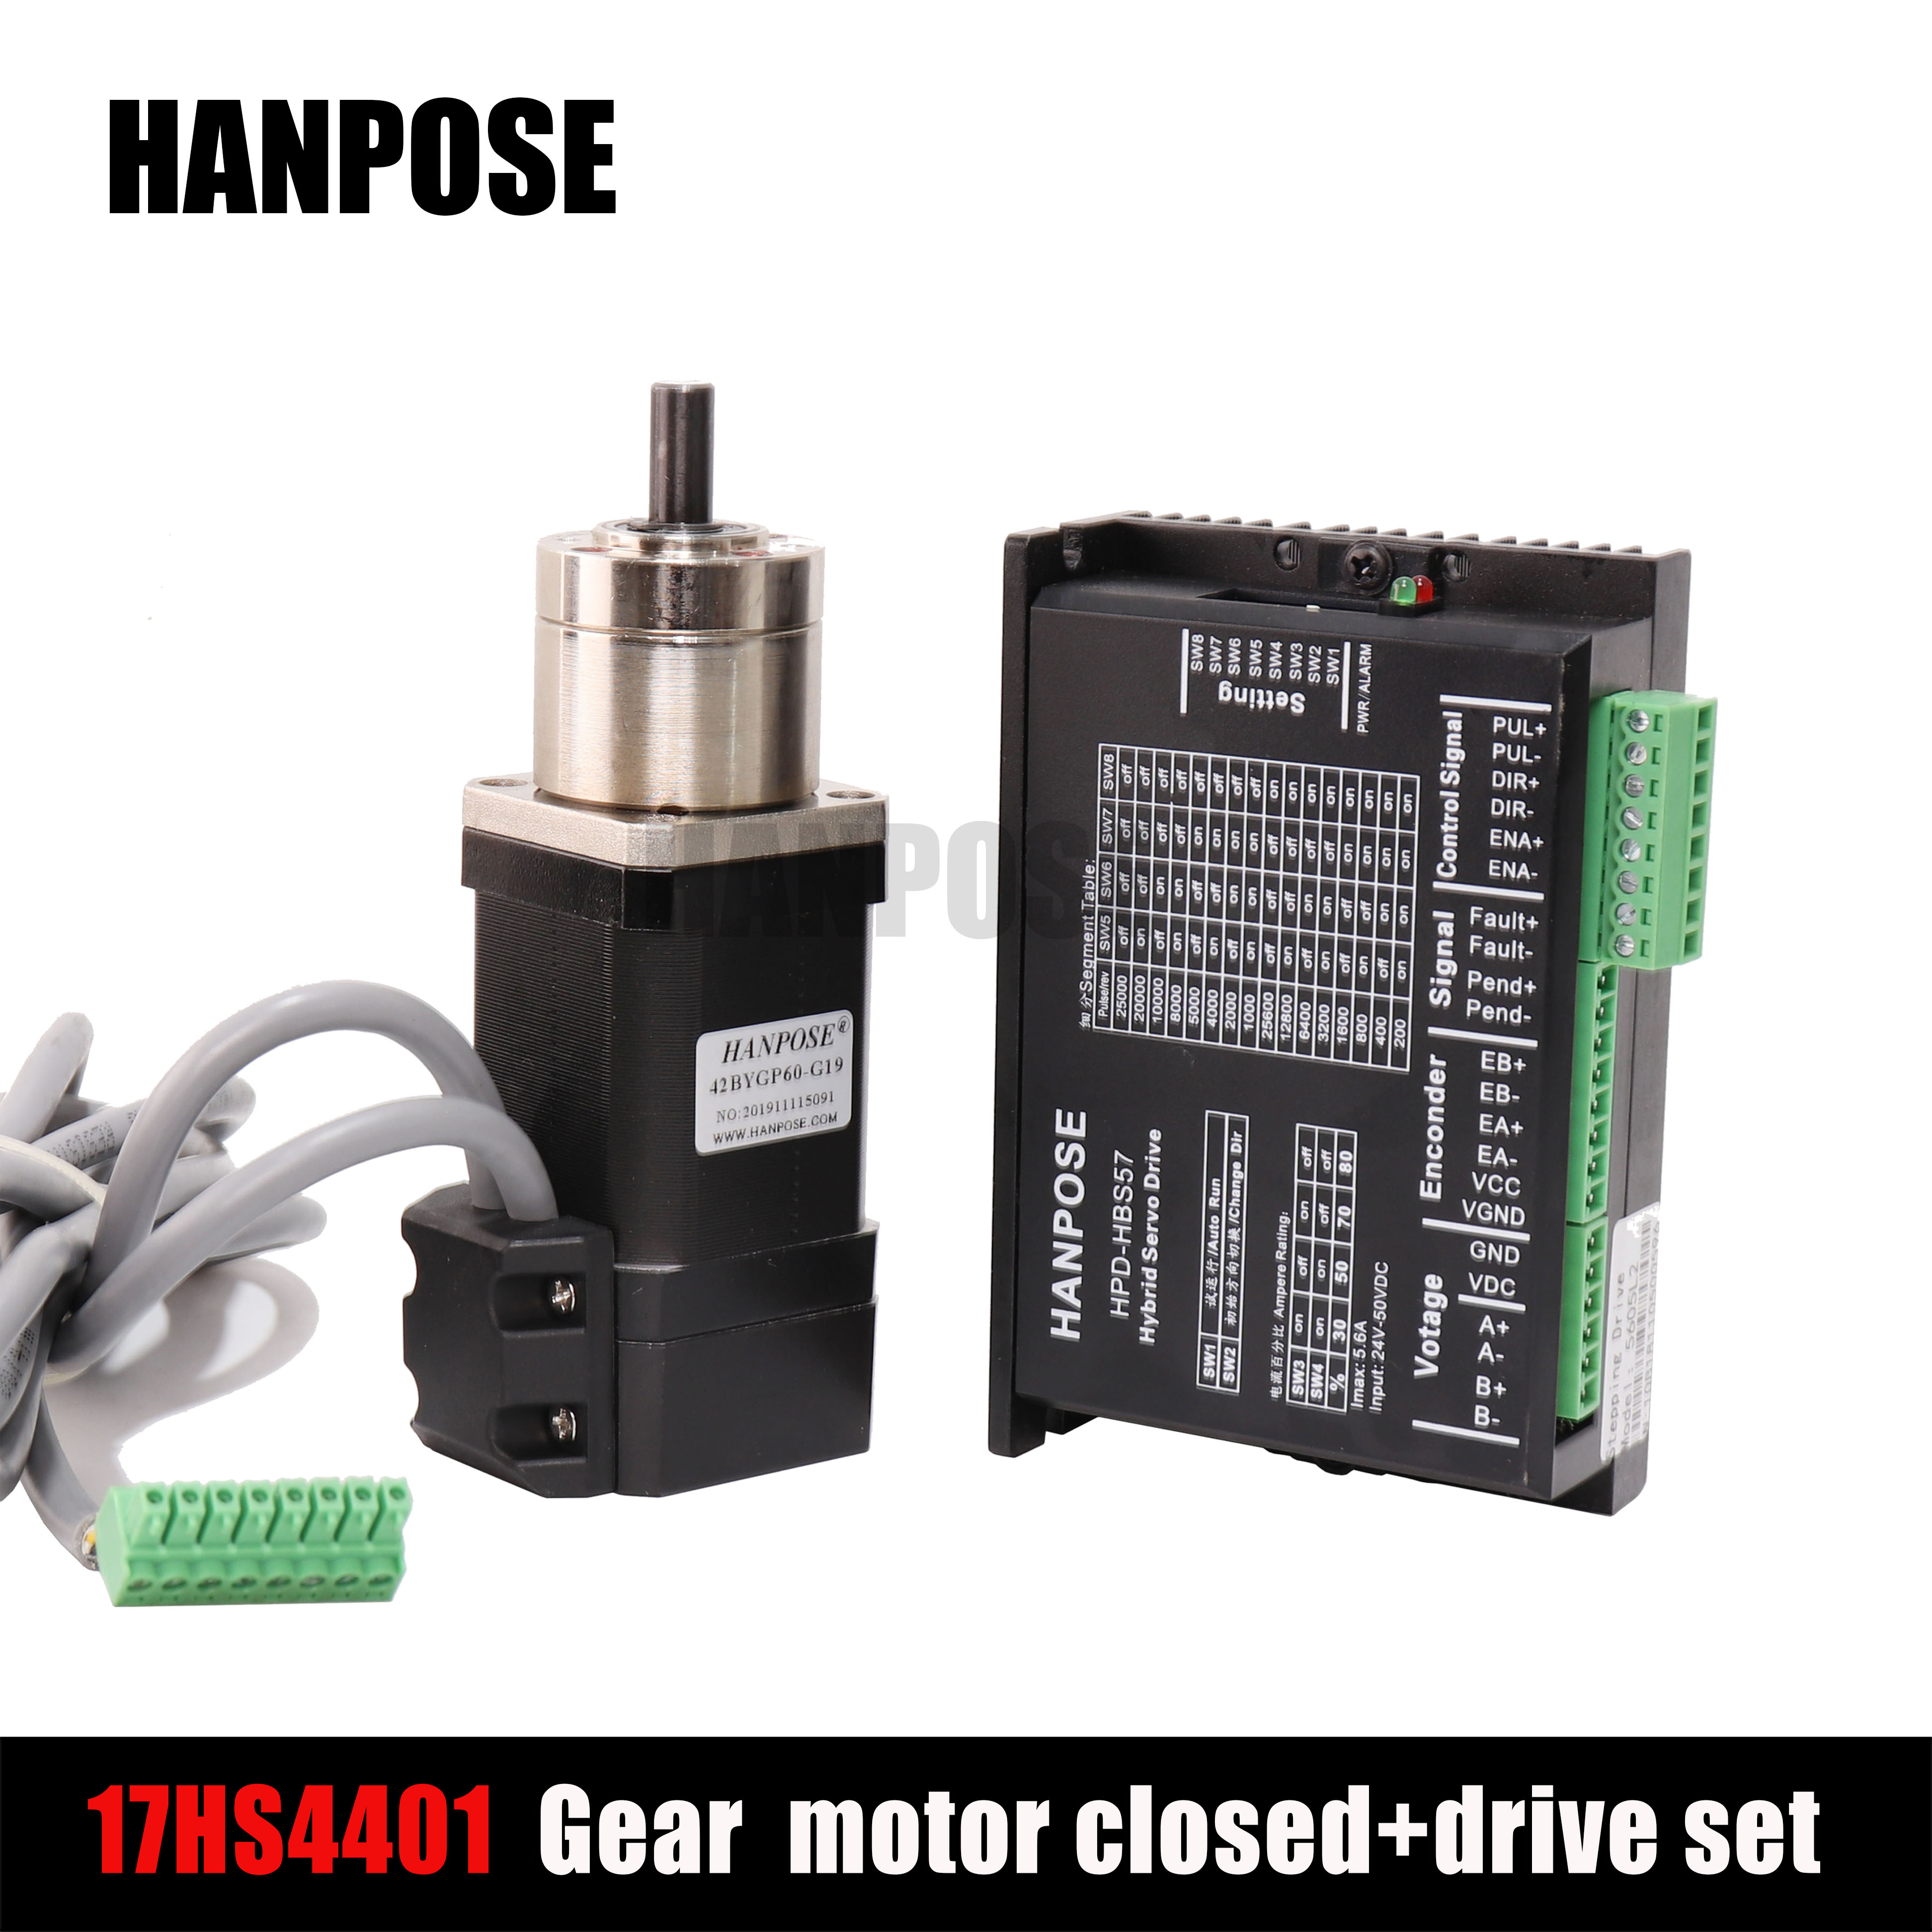 17hs4401 stepper motor deceleration closed-loop + drive 42 closed-loop motor body length 42x40mm1.5A <font><b>NEMA17</b></font> PG-stepper motor image